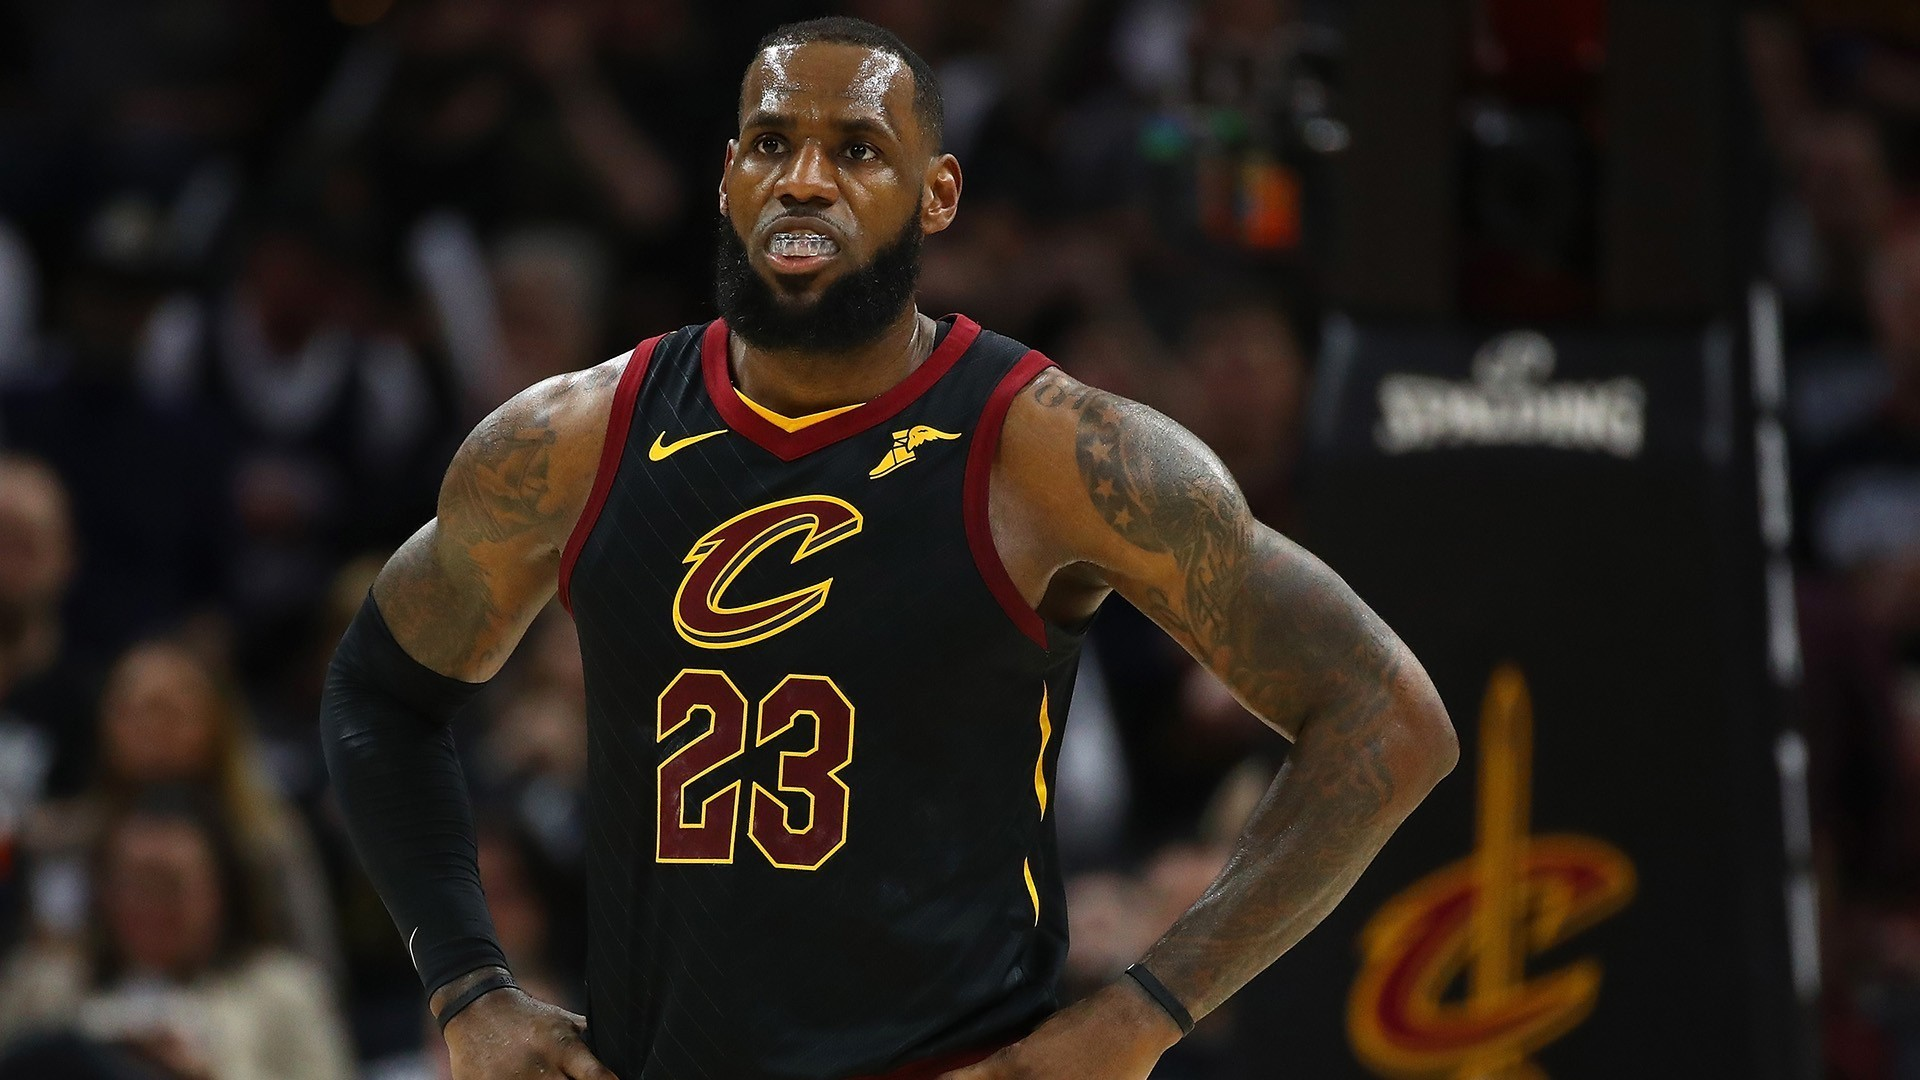 Lakers may have to part ways from Ball family to attract LeBron James  a4abfcfe7